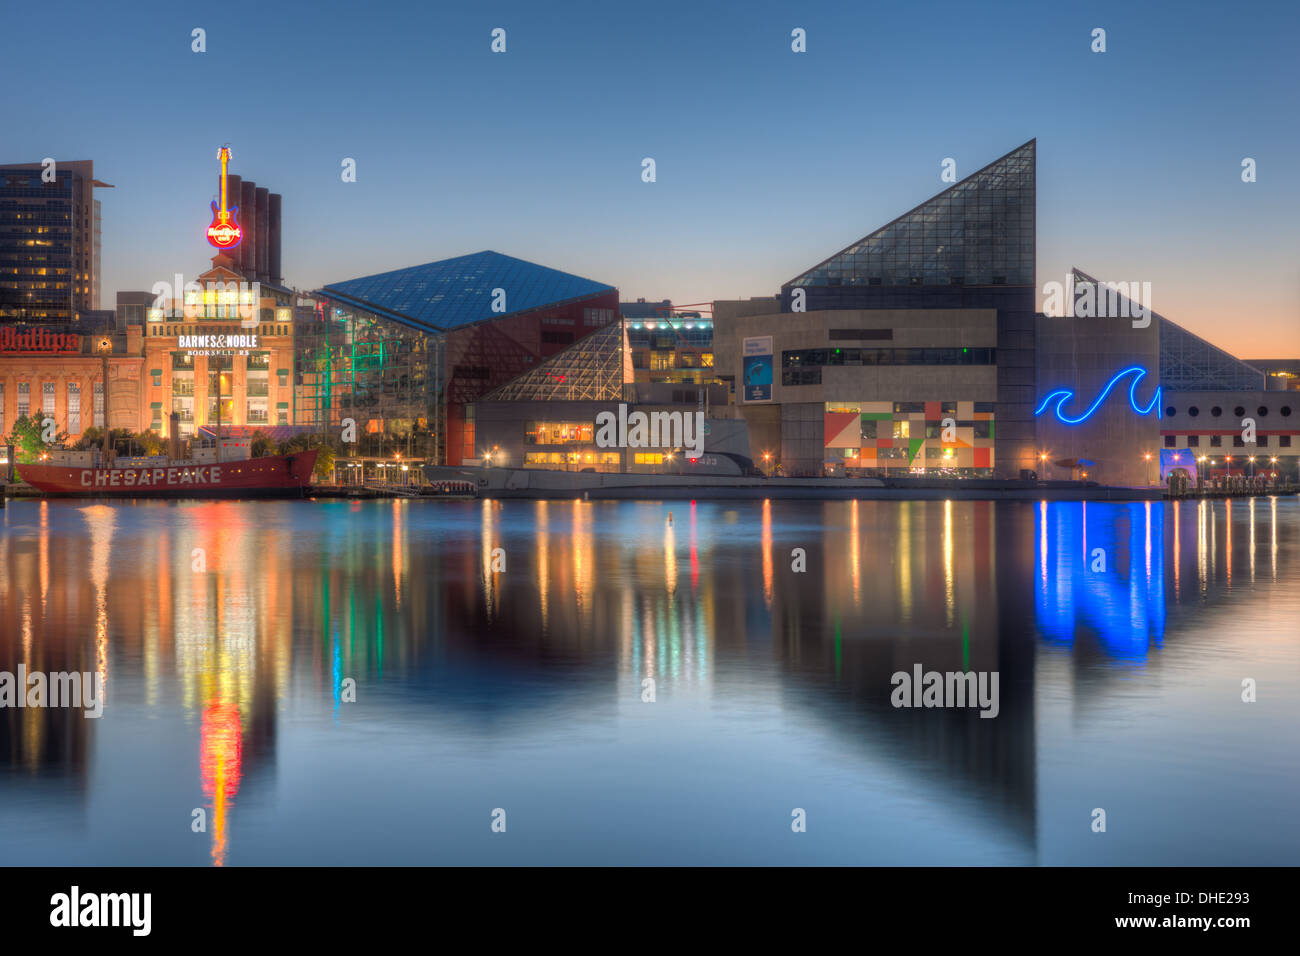 The National Aquarium reflects off the waters of the Inner Harbor during the last hour before sunrise in Baltimore, Maryland. - Stock Image